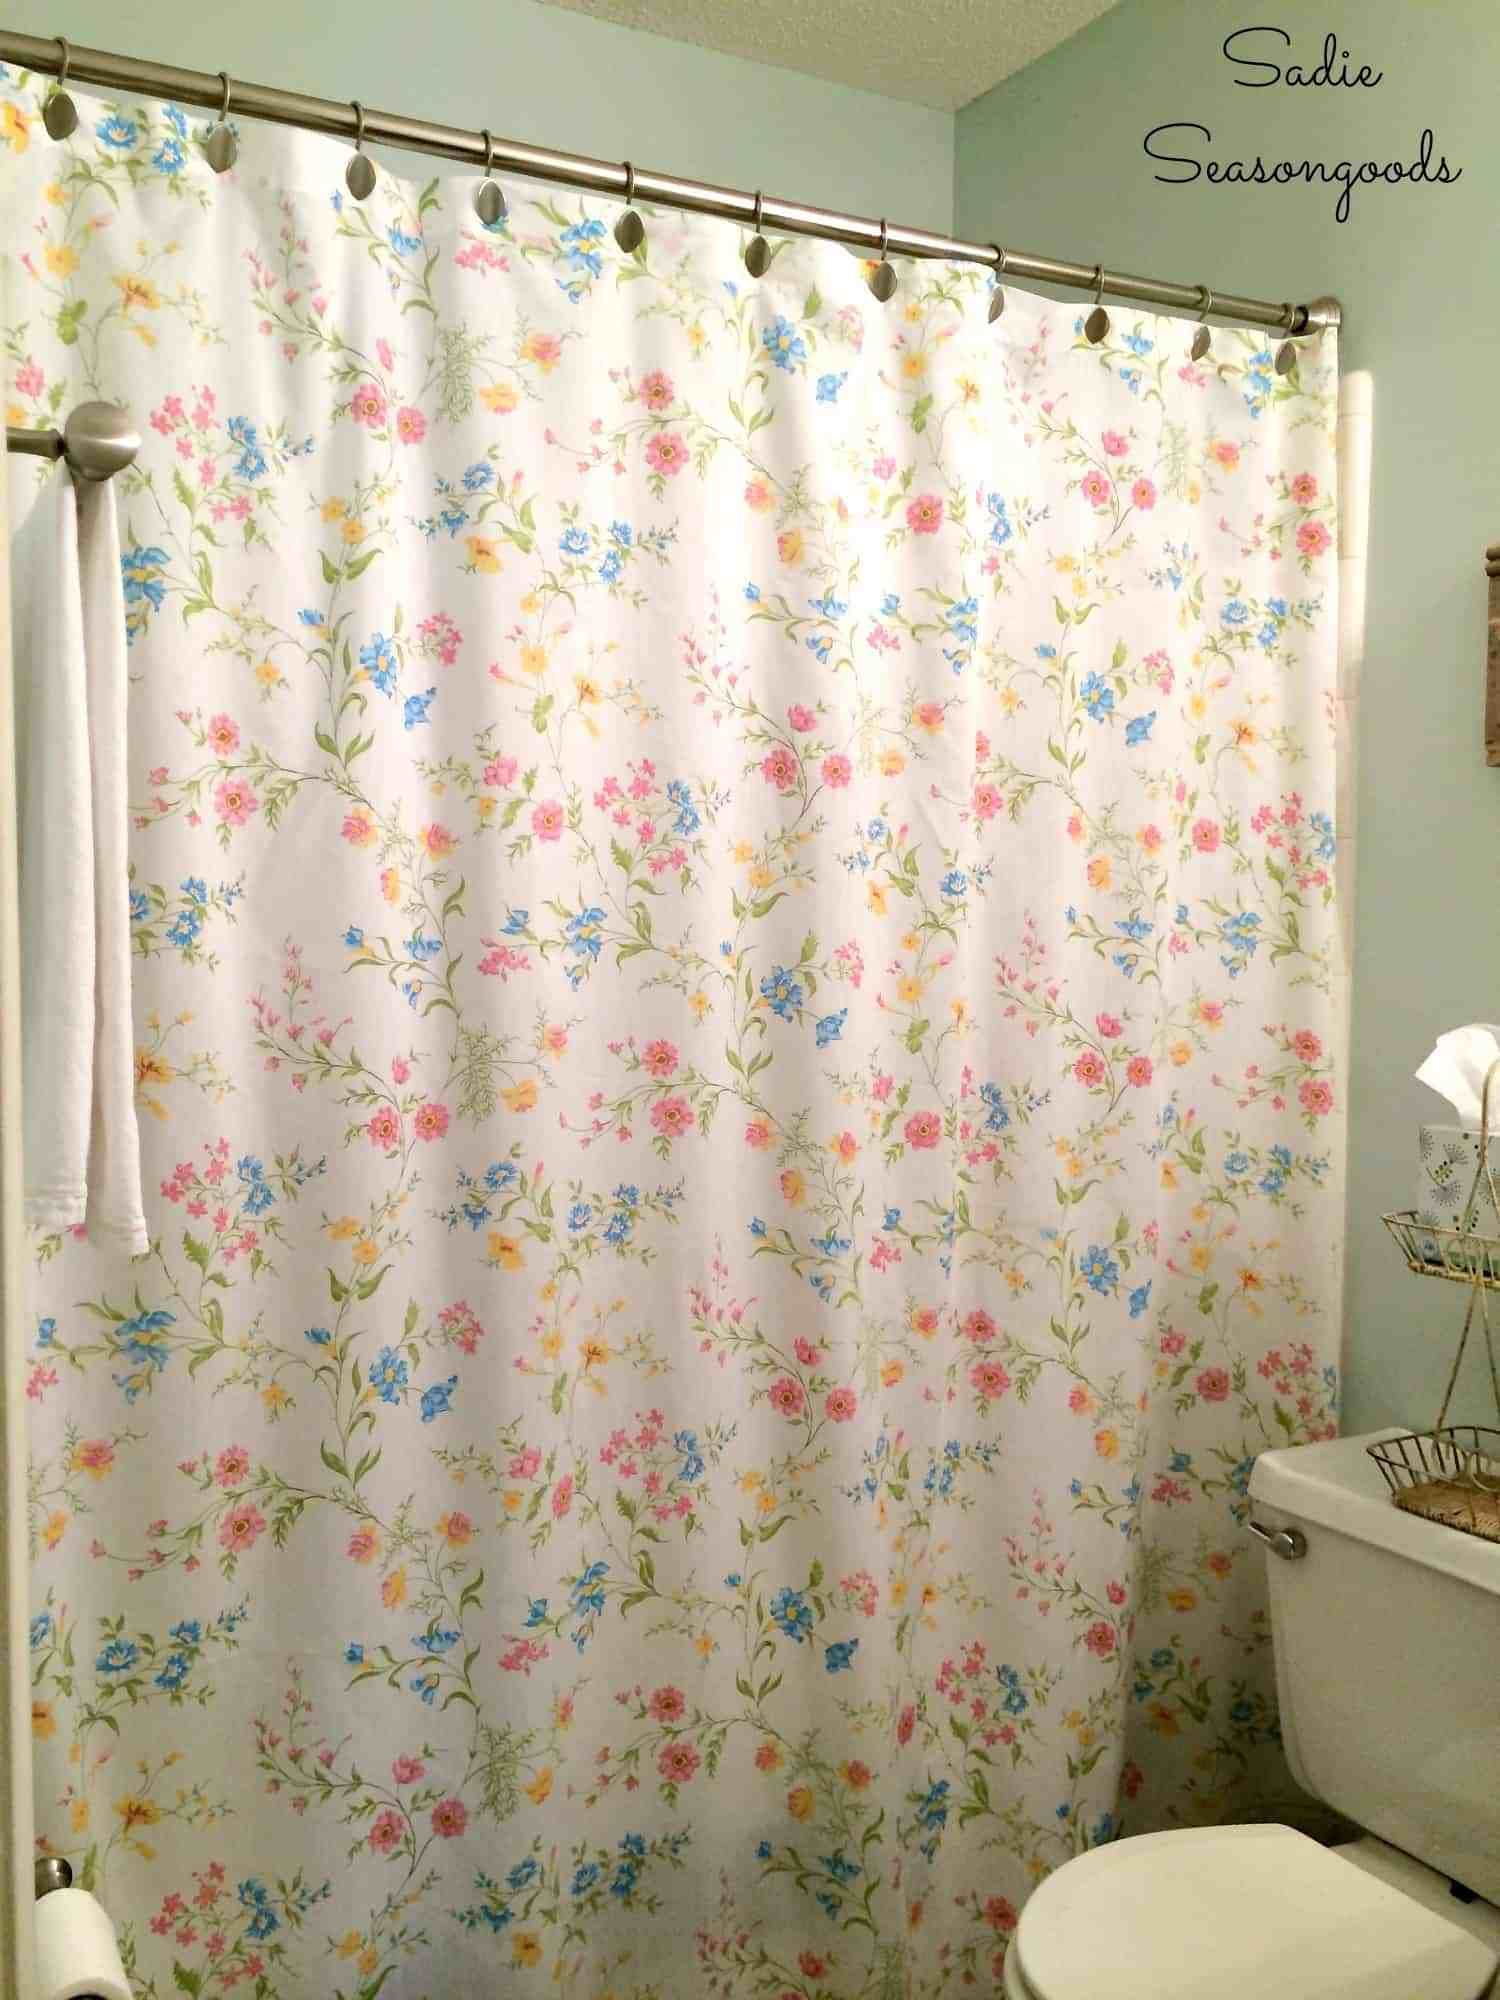 Diy Shower Curtain From A Repurposed Vintage Bed Sheet Misc